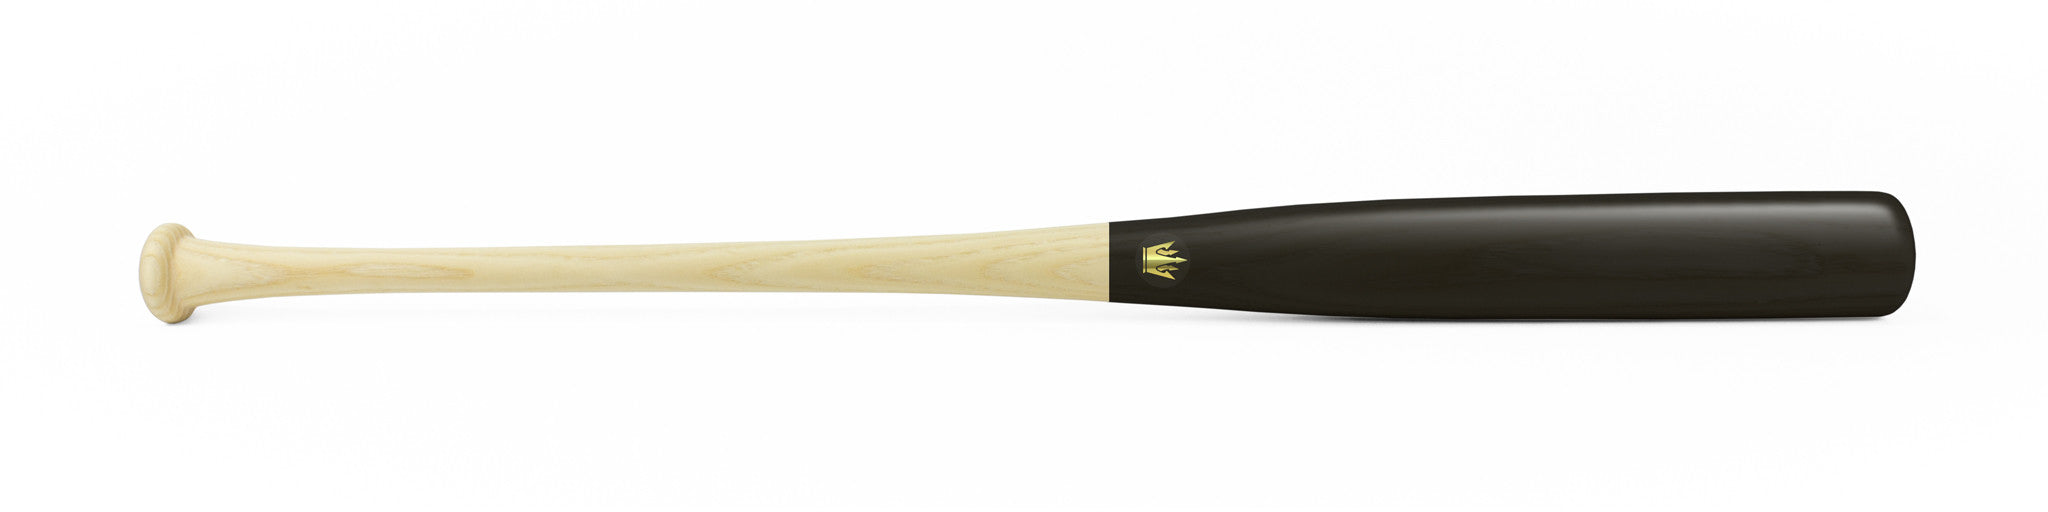 Wood bat - Ash model D24 Black Standard - 23